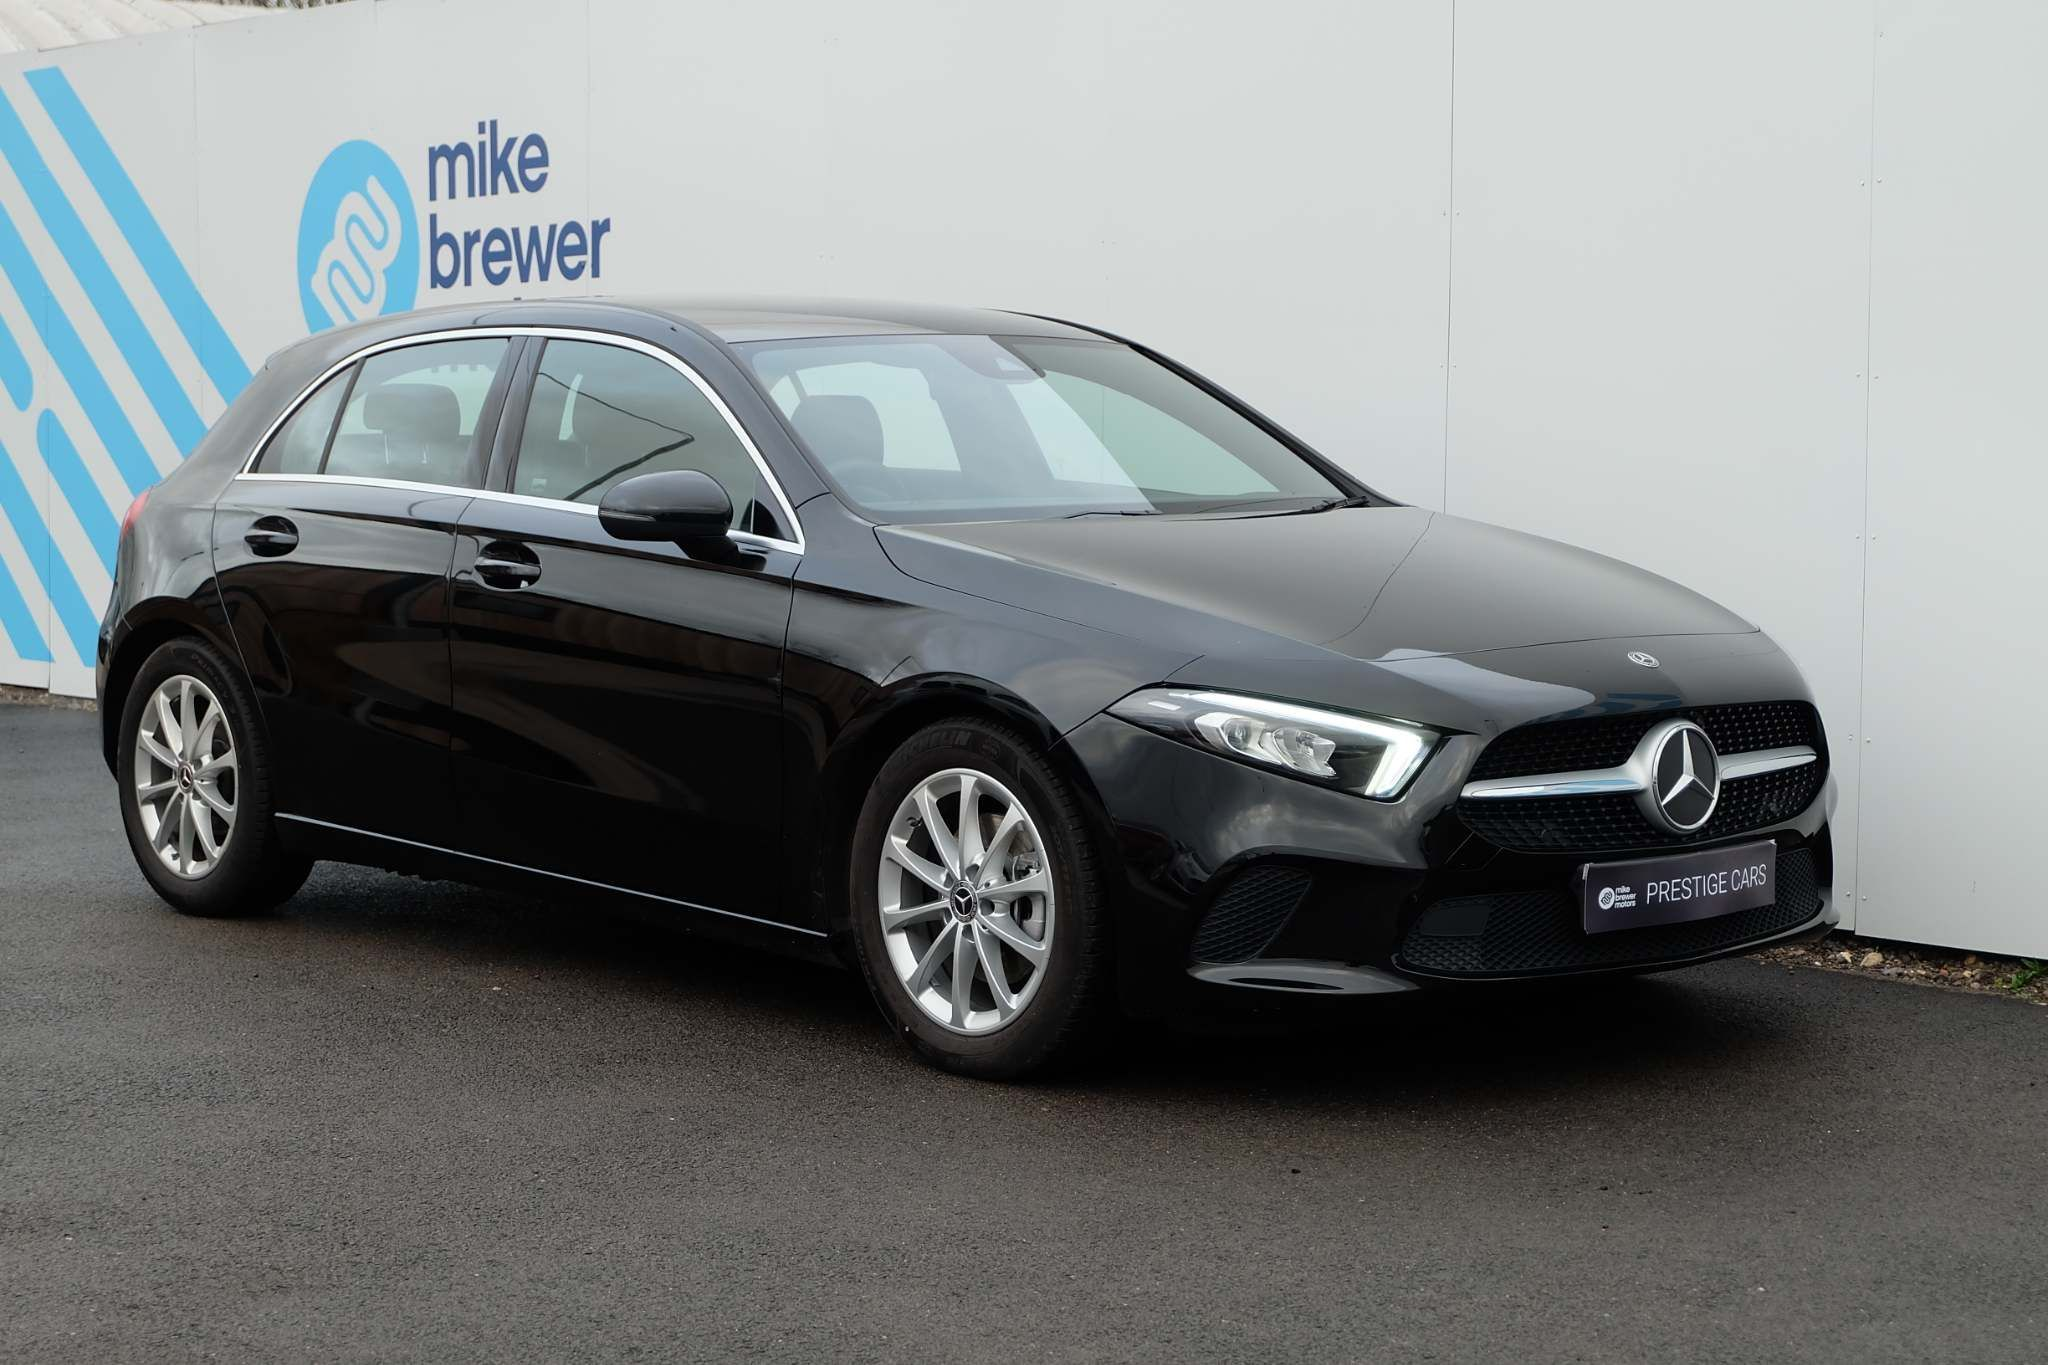 Used Mercedes-Benz A Class 1.3 A200 Sport 7g-Dct (s/s) 5dr